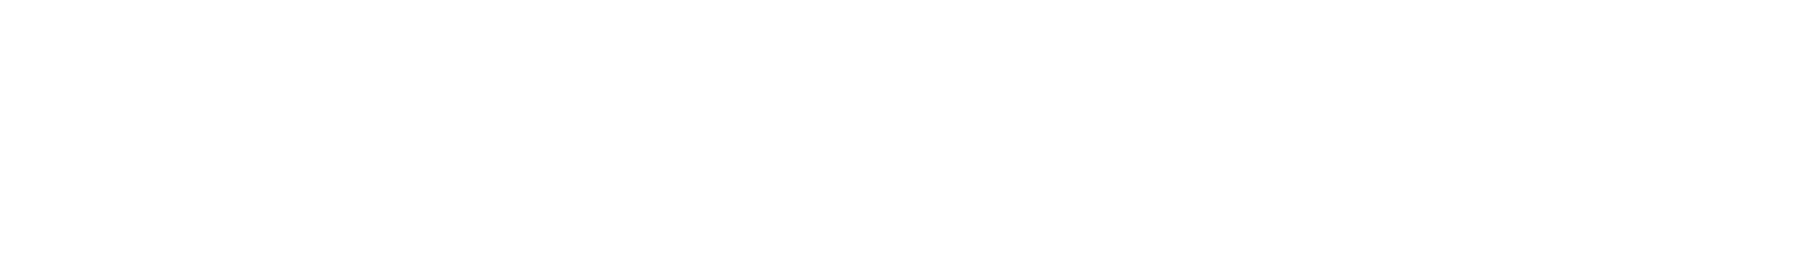 veh1 cutted sounds   127